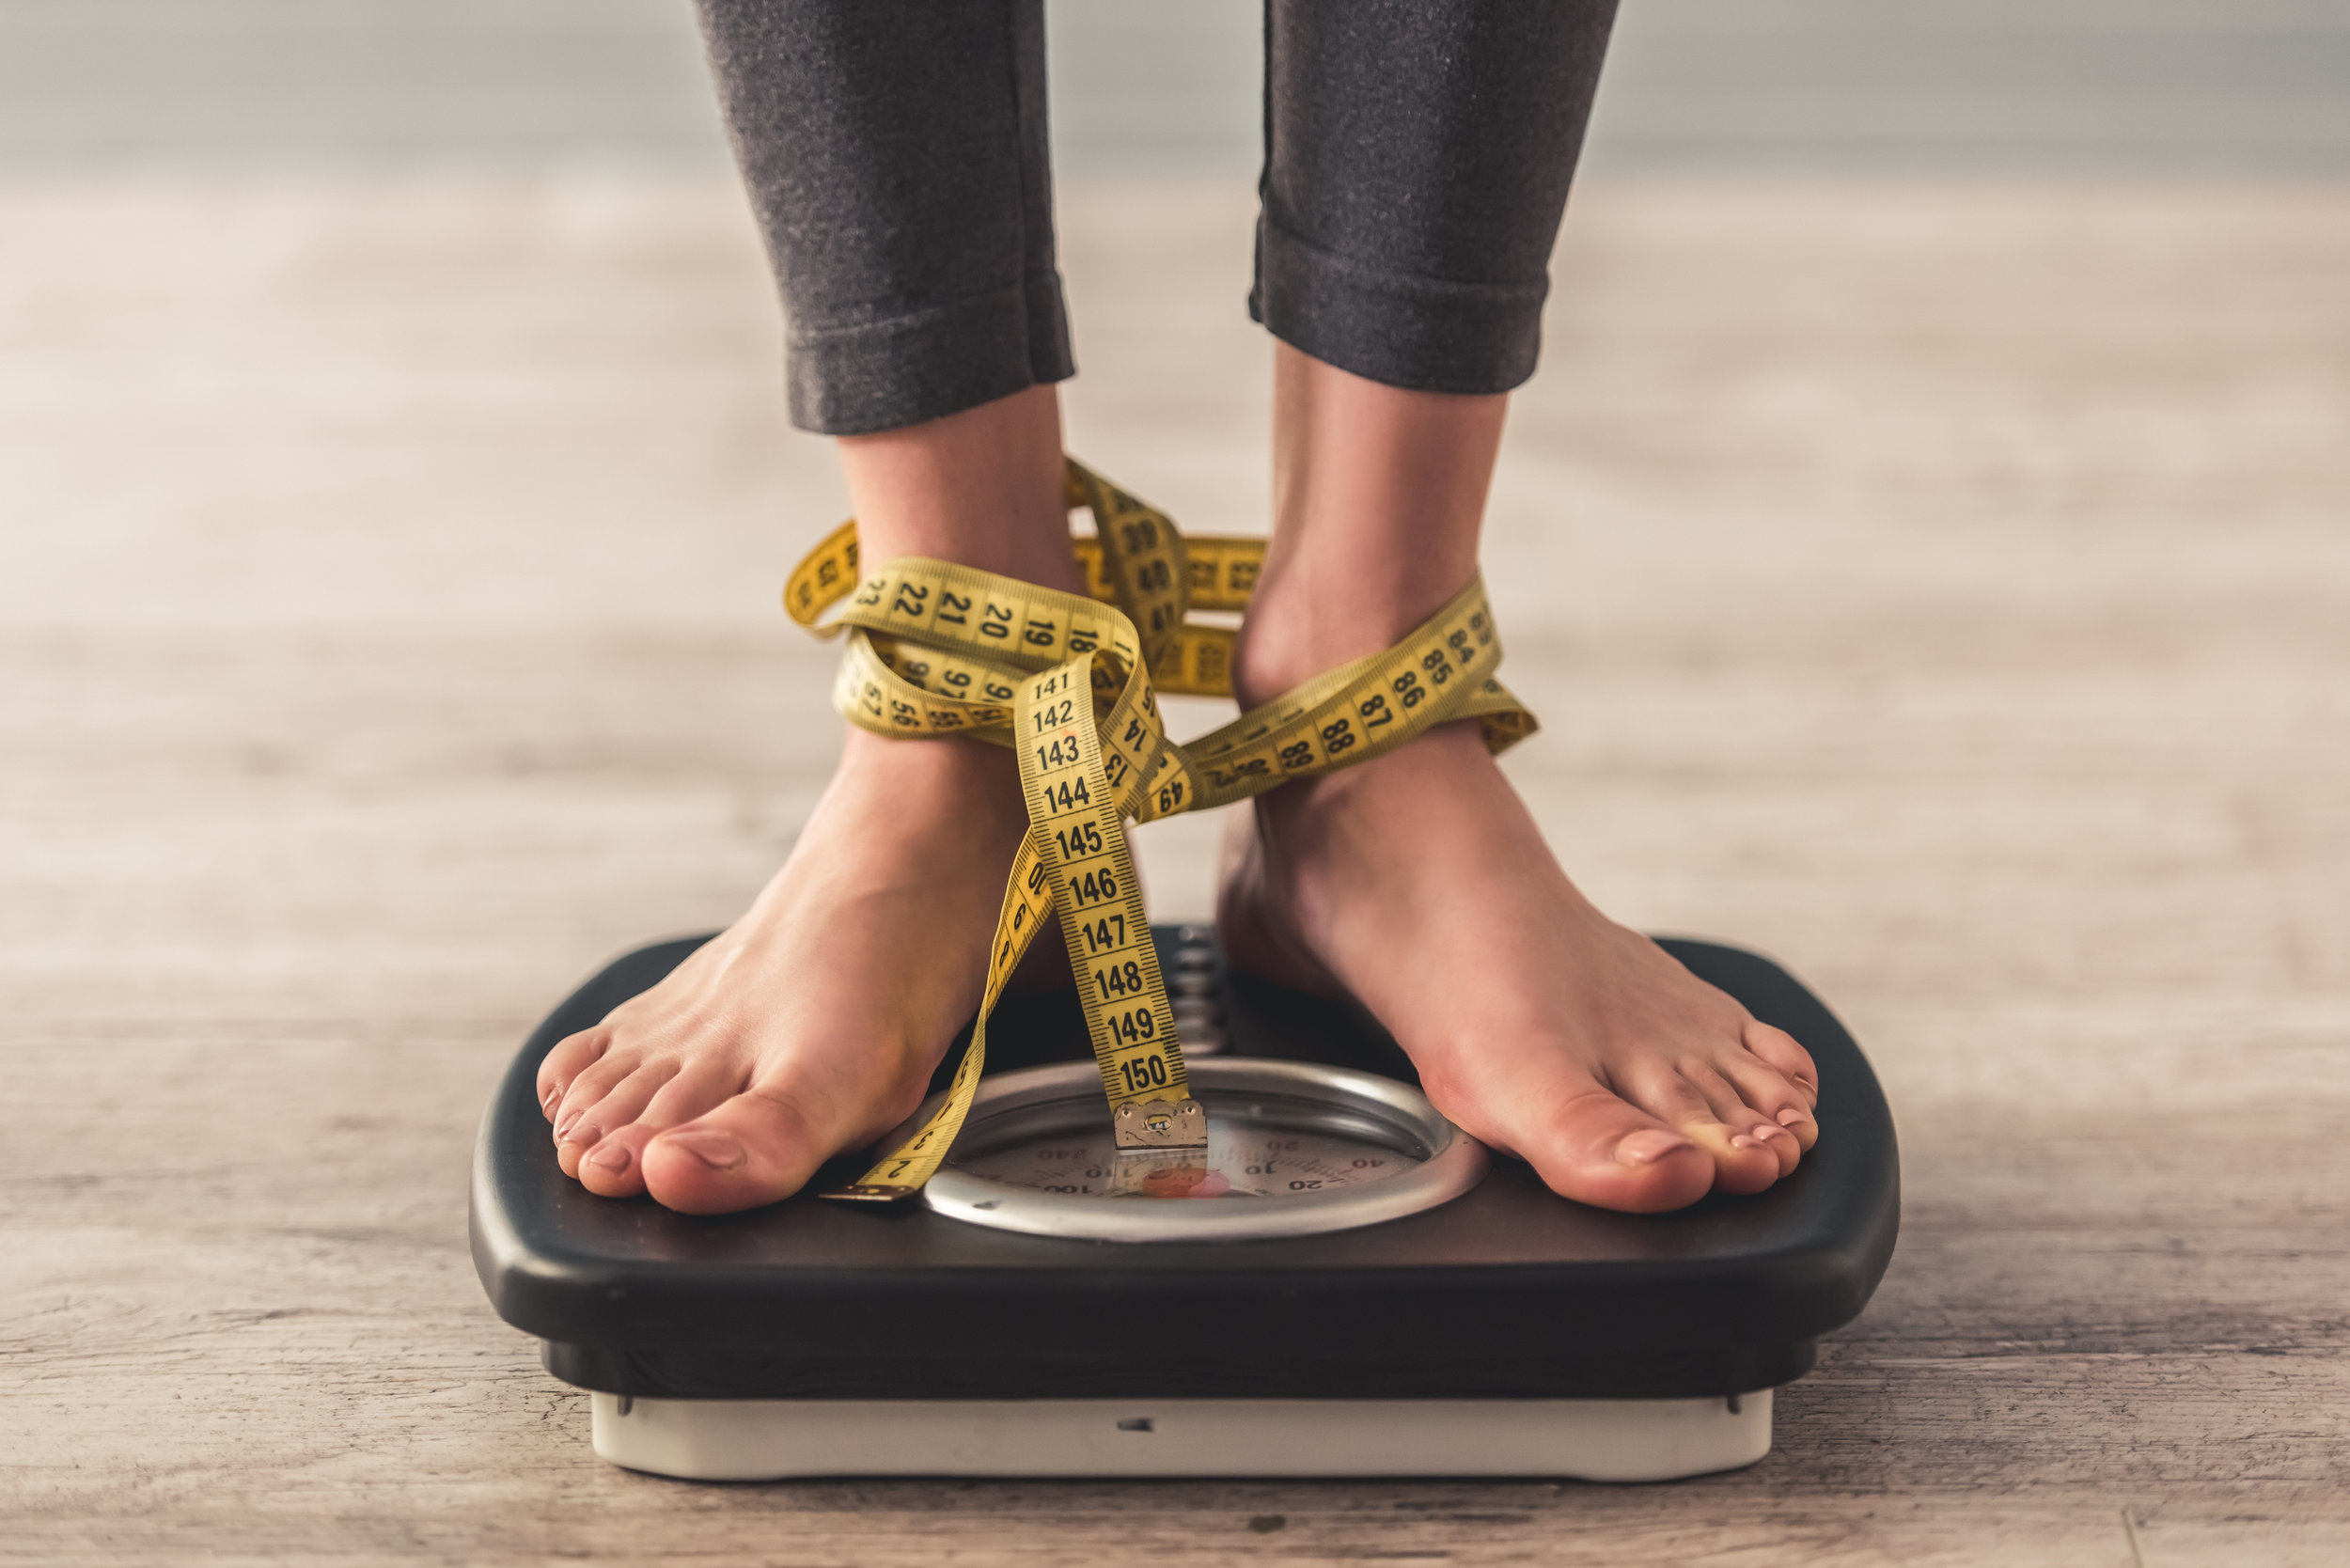 Entering Recovery - Recovering from an eating disorder can be difficult. If you or someone you know is trying to overcome an eating disorder, you might find that other physical and emotional issues can come up during the process. But in the long-run, recovery from an eating disorder can lead to a healthier life overall.